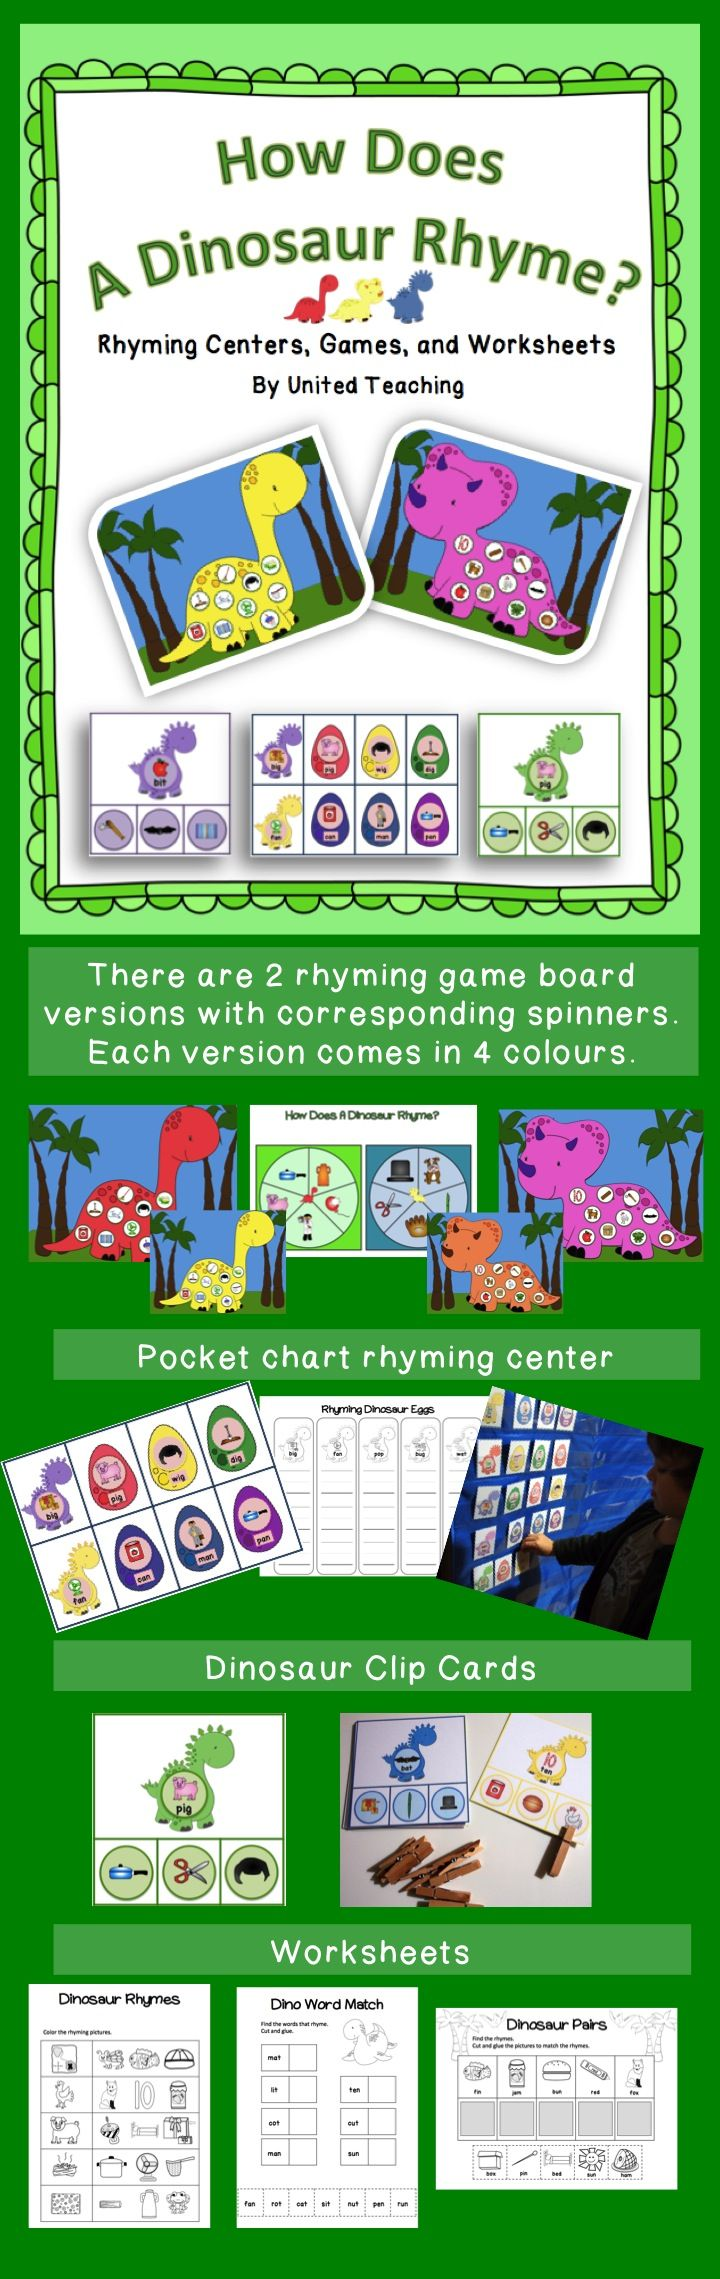 How Does a Dinosaur Rhyme >> United Teaching >> Teach and Reinforce Rhyming Skills with fun learning centers, games, and worksheets >> Common Core: CCSS.ELA-Literacy.RF.K.2a Recognize and produce rhyming words.